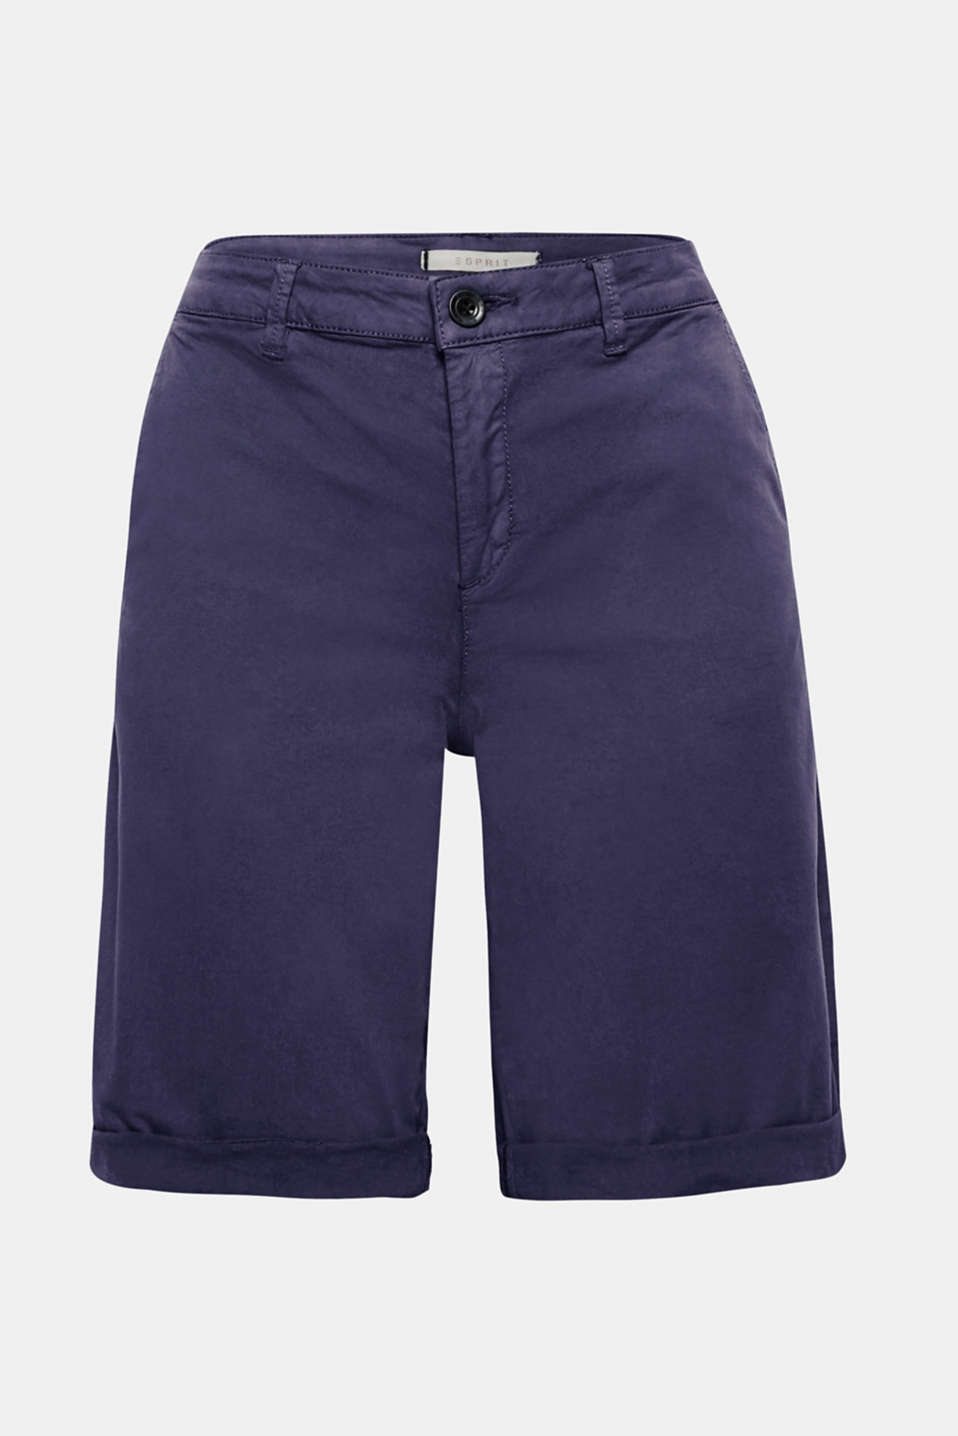 Your summer essential for free time and holidays: Bermuda shorts in a garment-washed look made of soft stretch cotton.